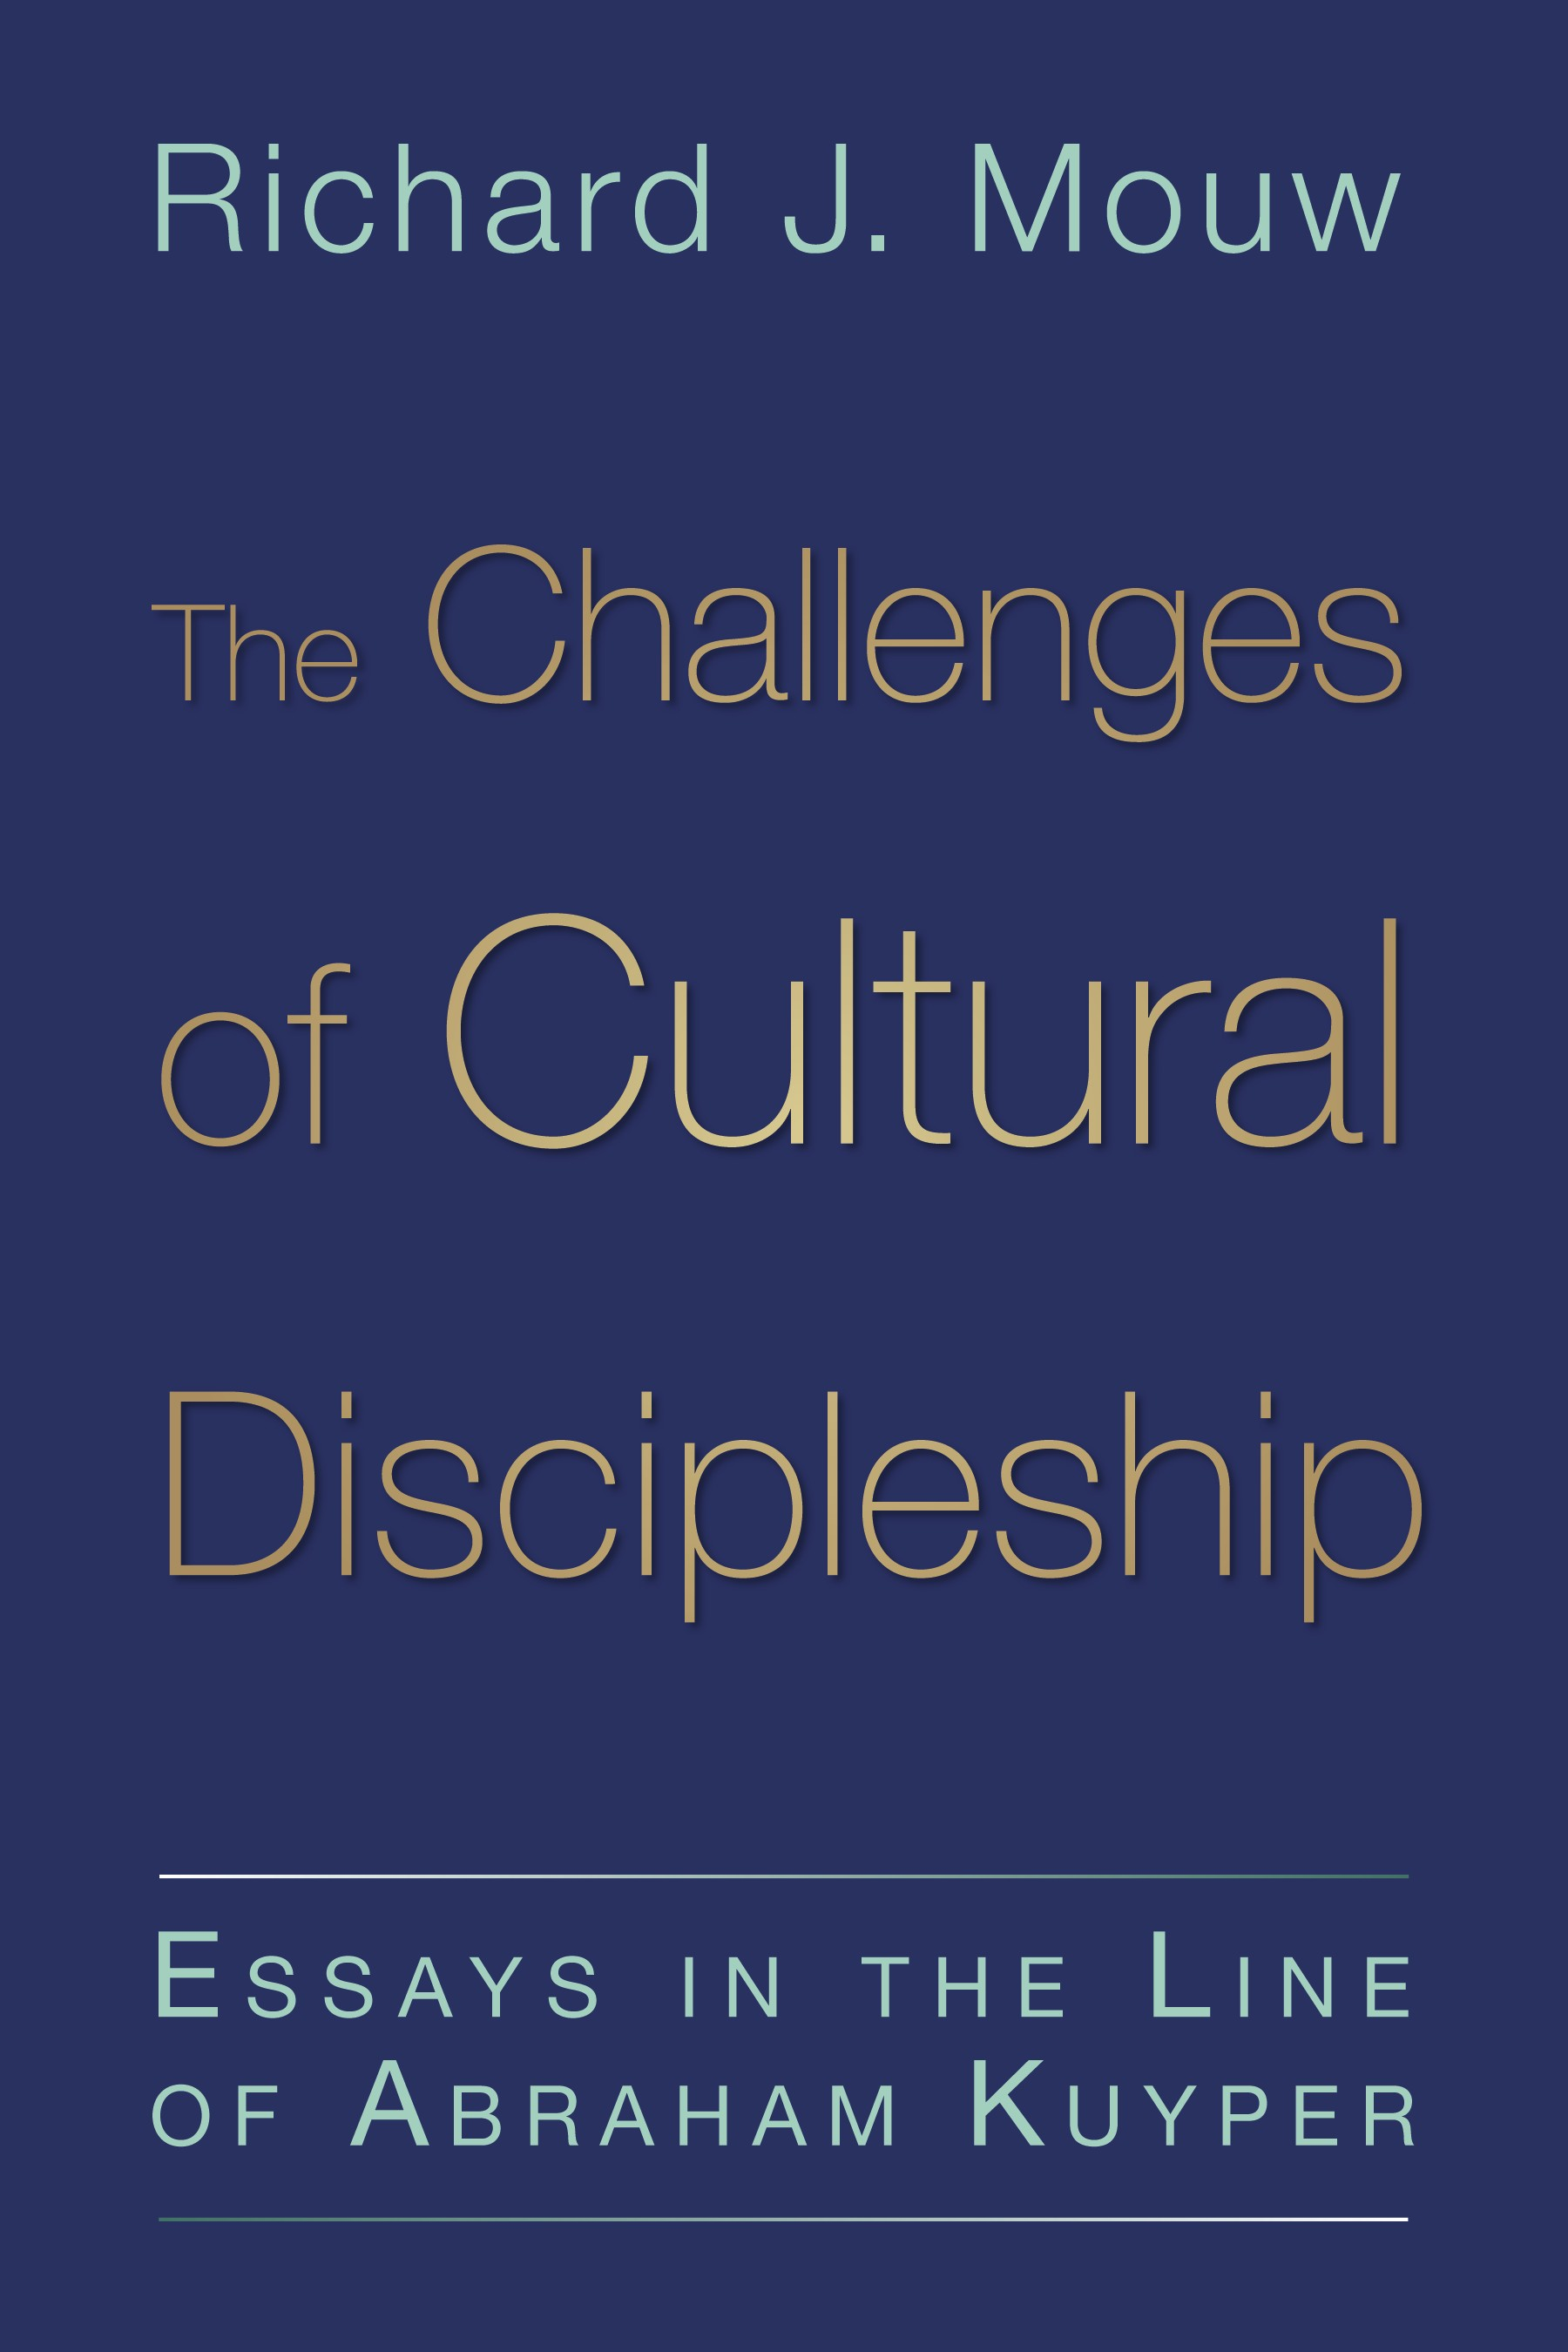 challenges of cultural discipleship.jpg